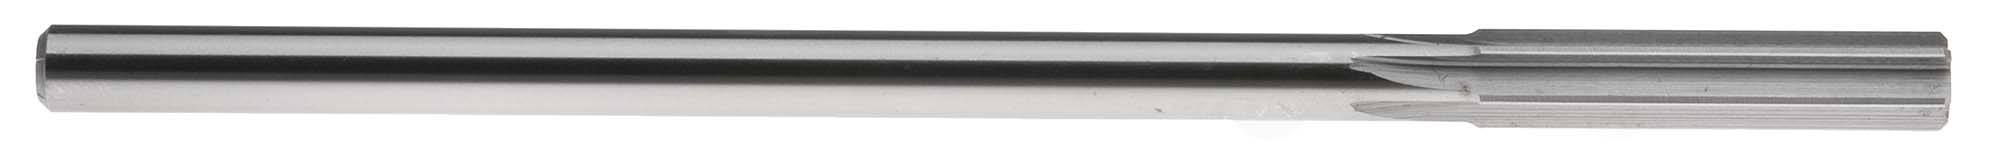 ".3730 "" Dowel Pin Size Machine Reamer, High Speed Steel"